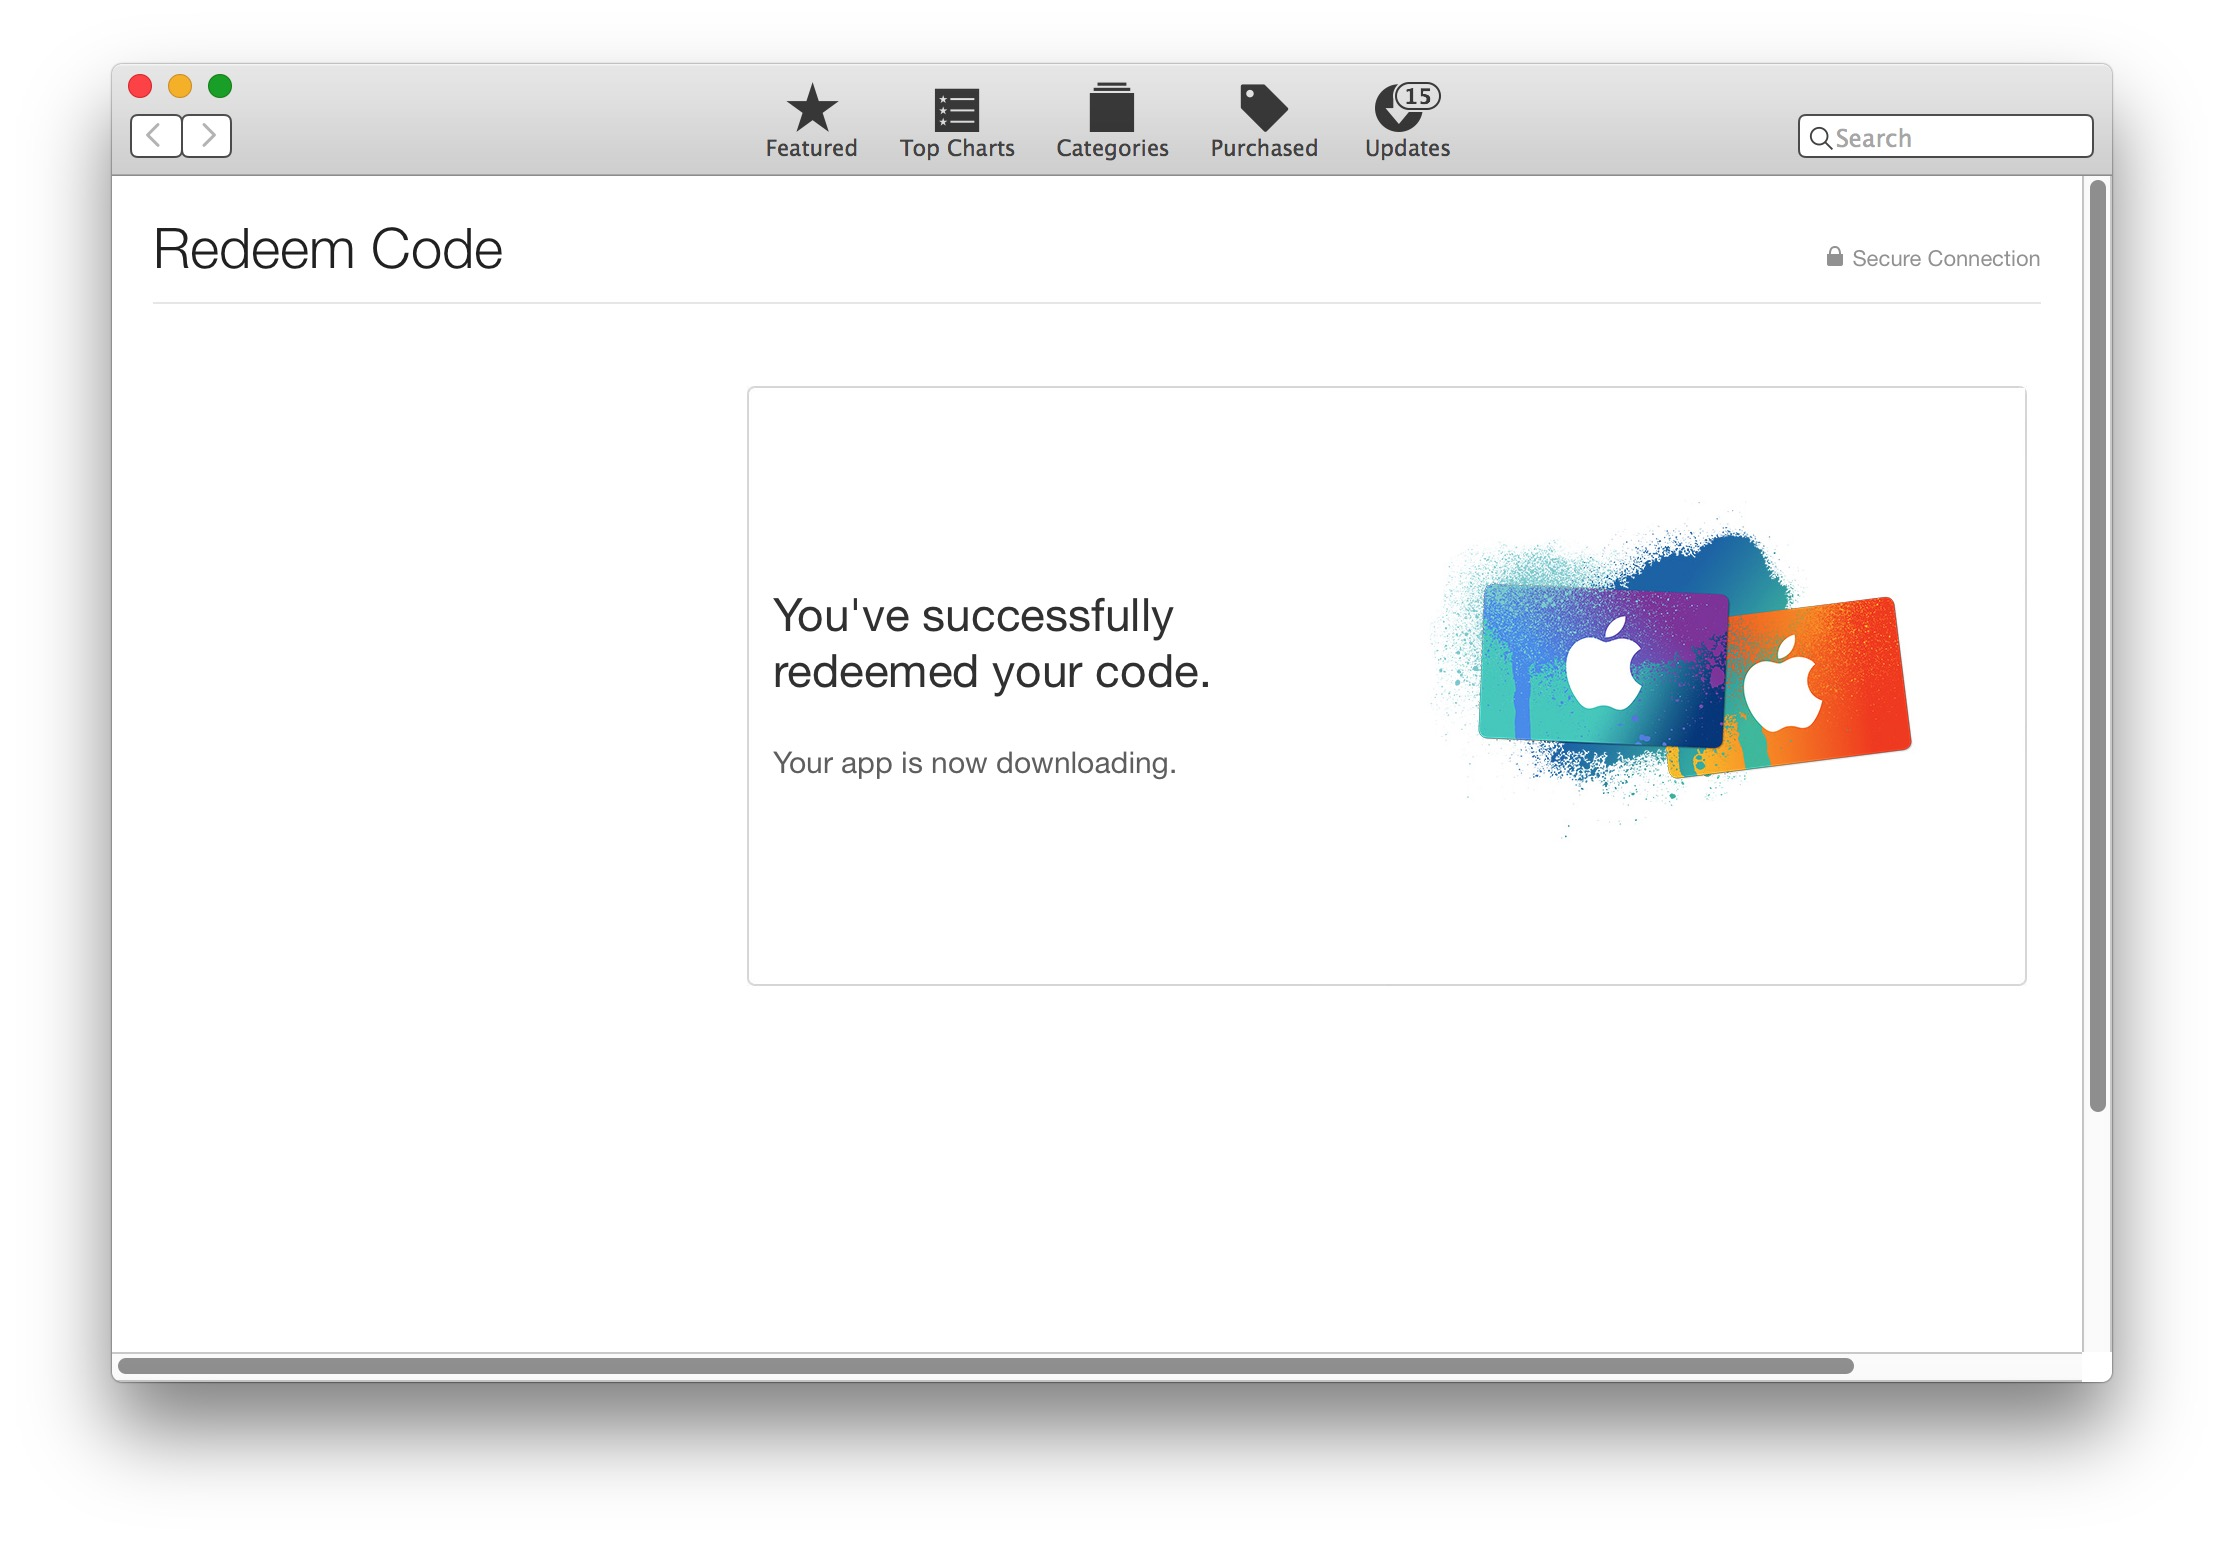 Code redeemed for macOS Sierra